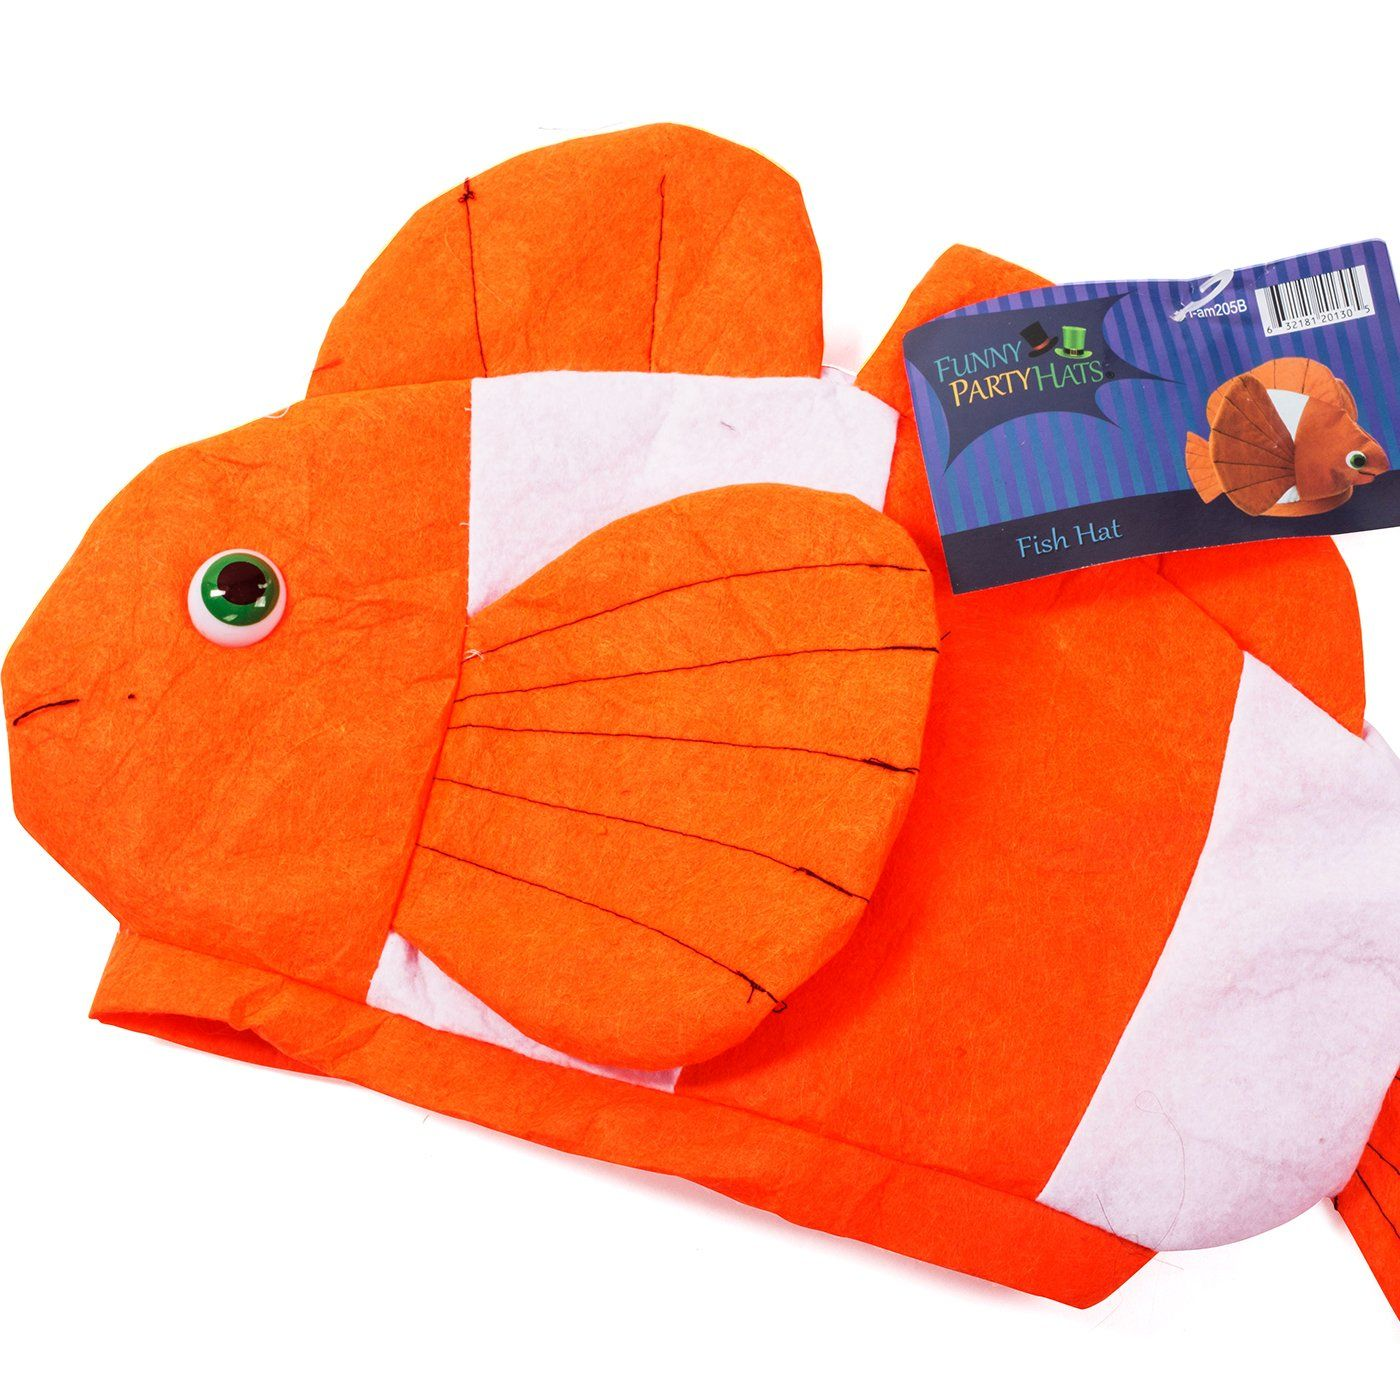 Ocean Animal Hats Sea Animal Hats Clown Fish Hat Fish Hat Costume Hats by Funny Party Hats